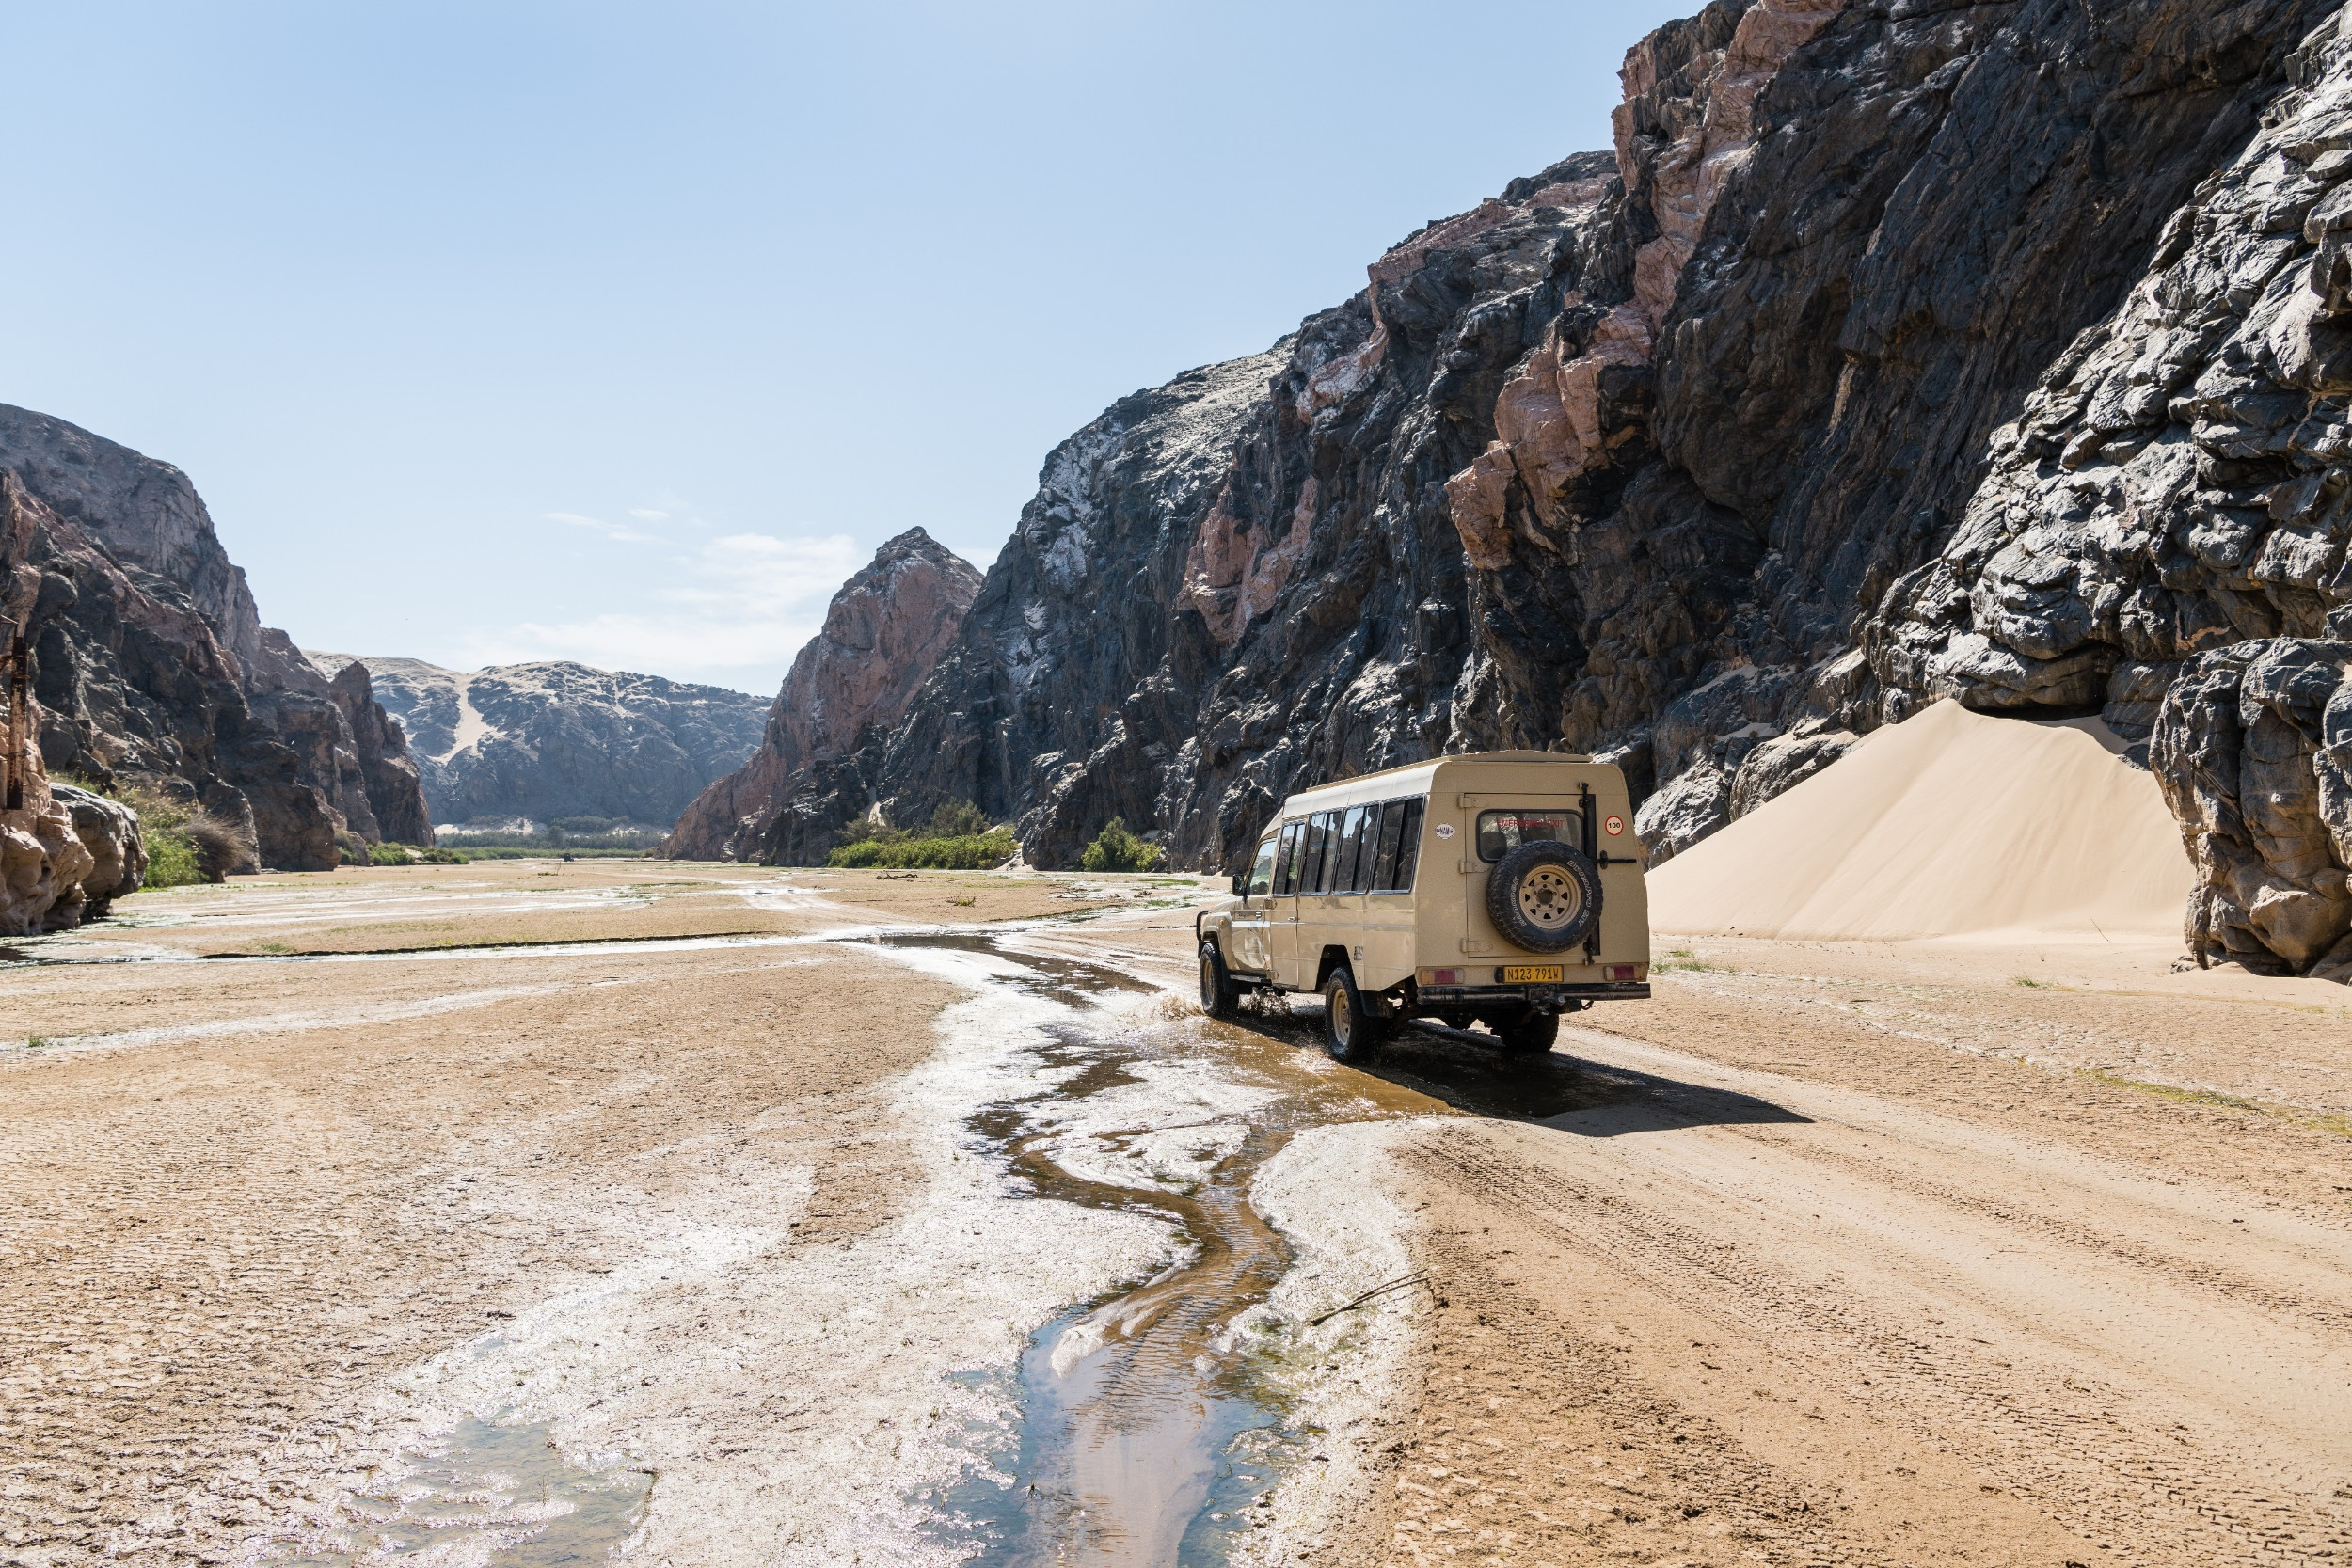 32Shipwreck Lodge - Activities - Driving through the riverbed.jpg